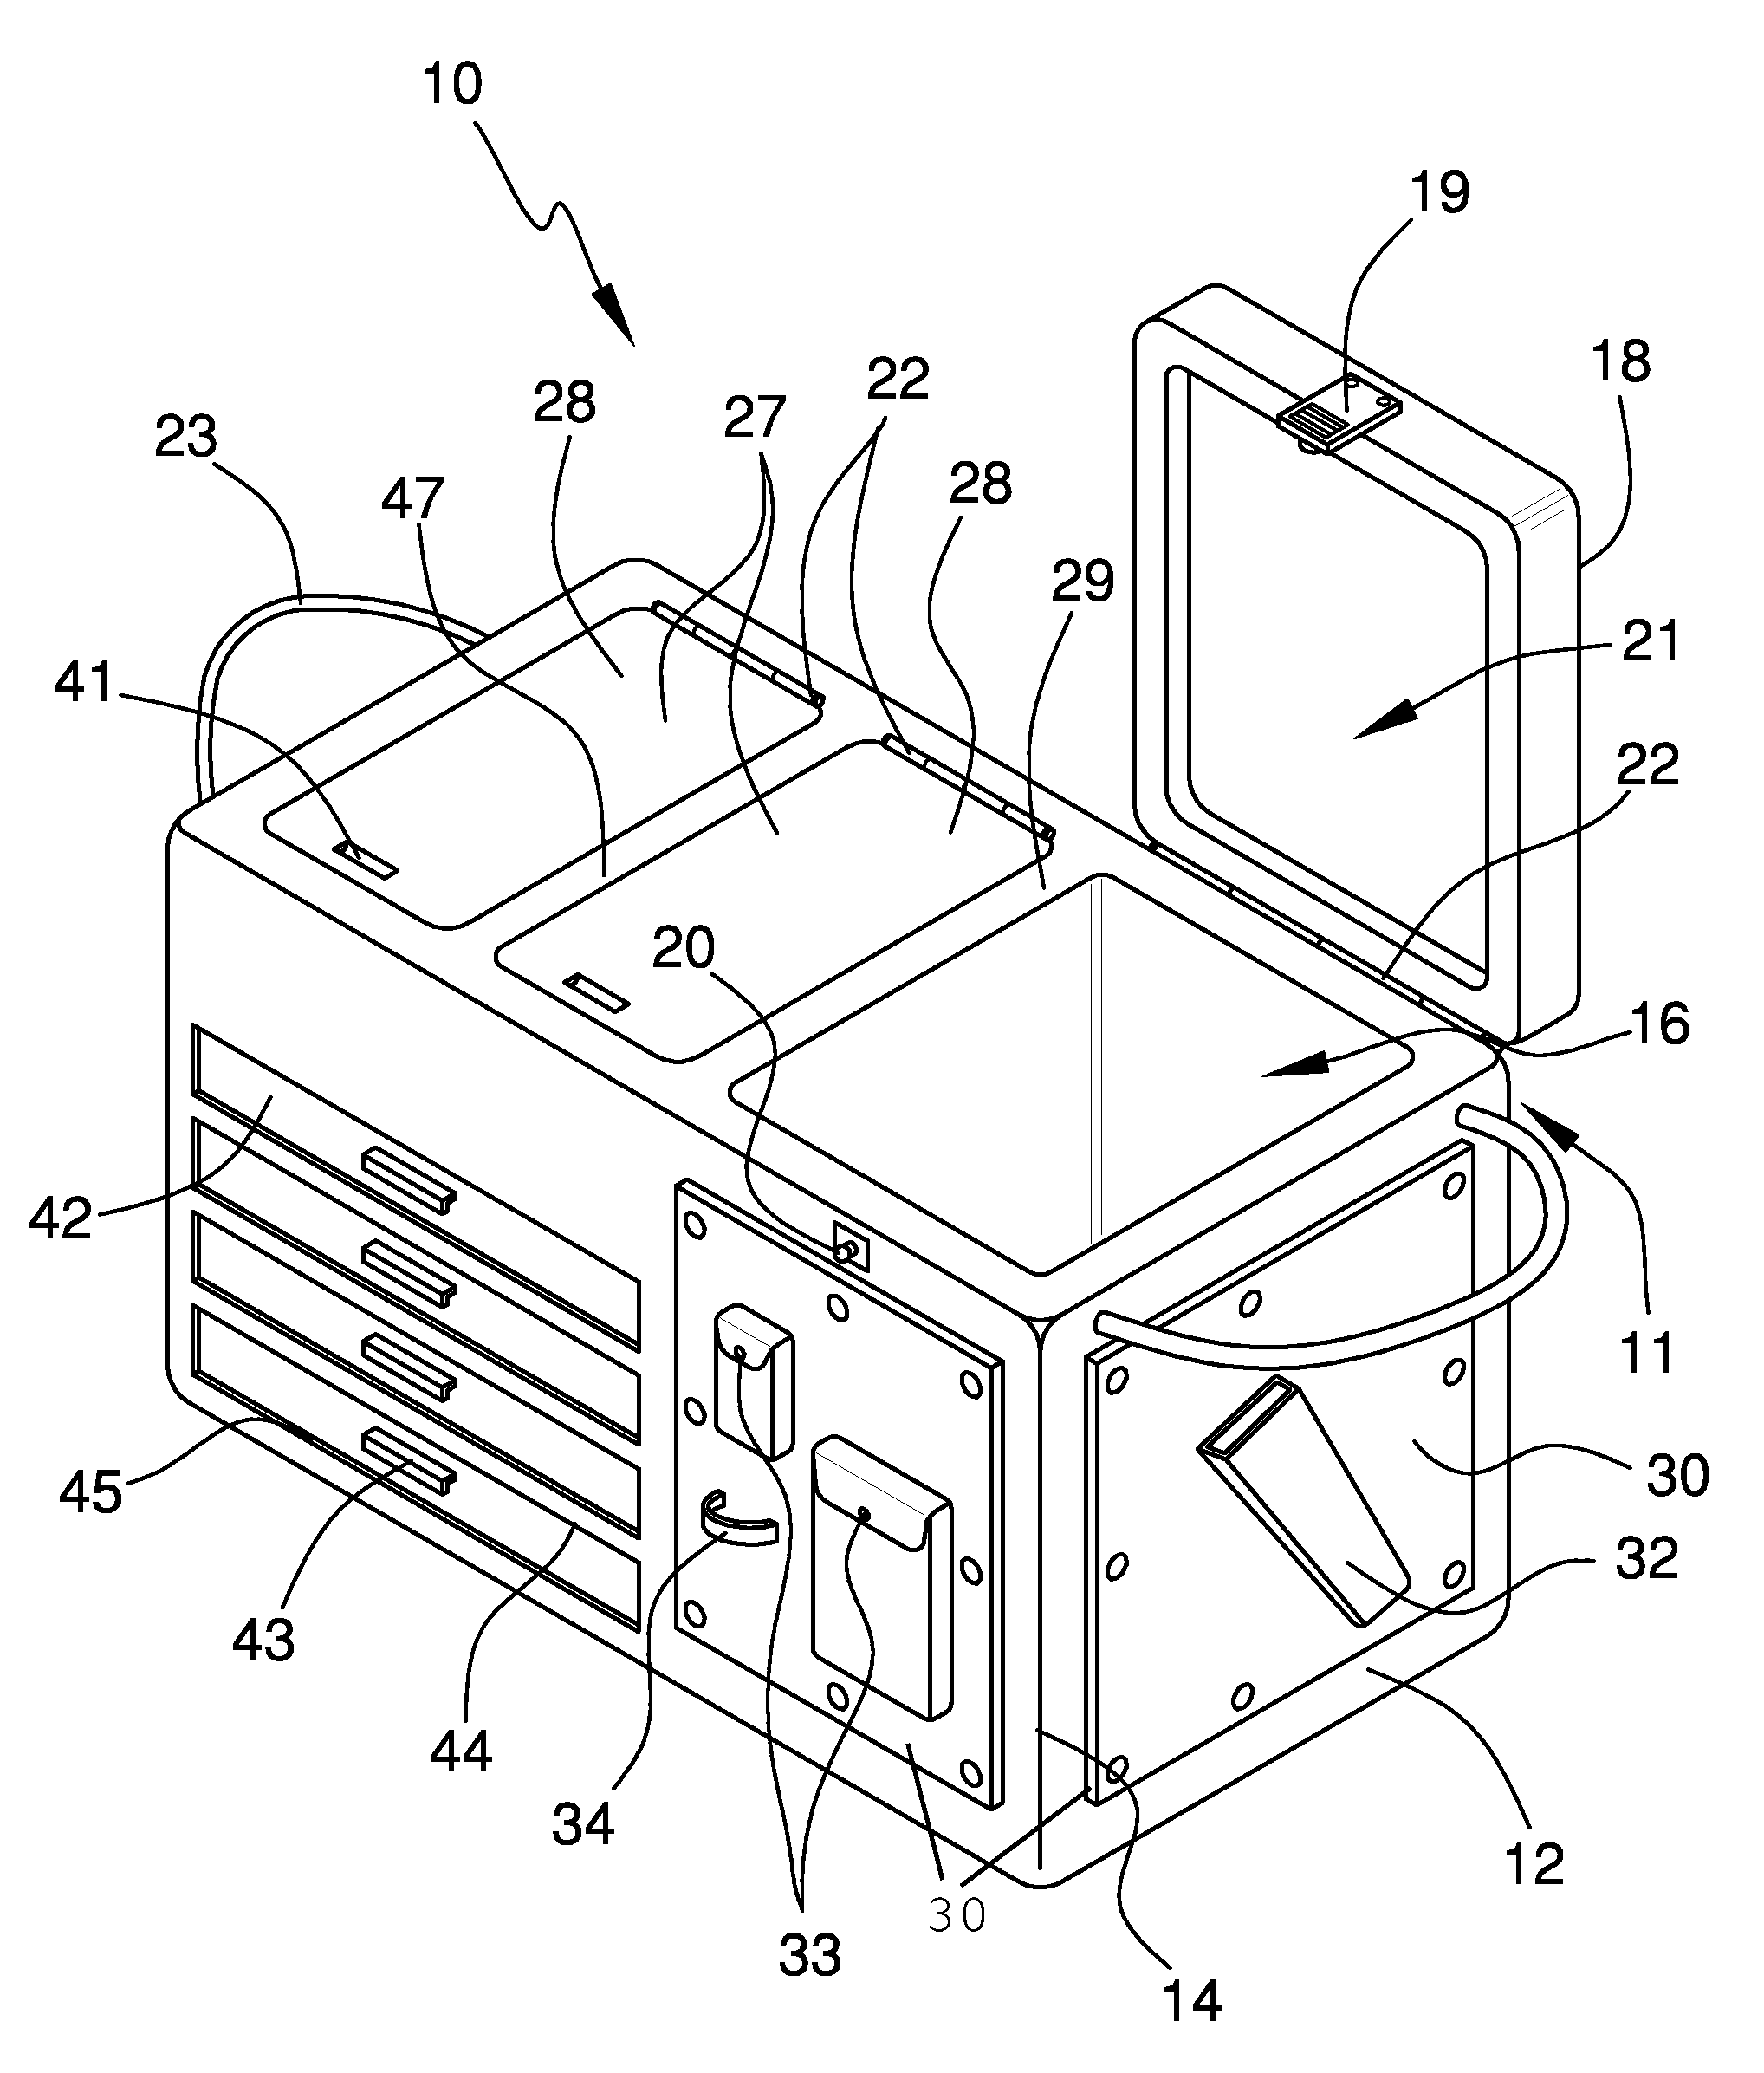 US07415794 20080826 D00000 patent us7415794 portable cooler and tackle box google patents 2001 hyundai xg300 fuse box location at fashall.co